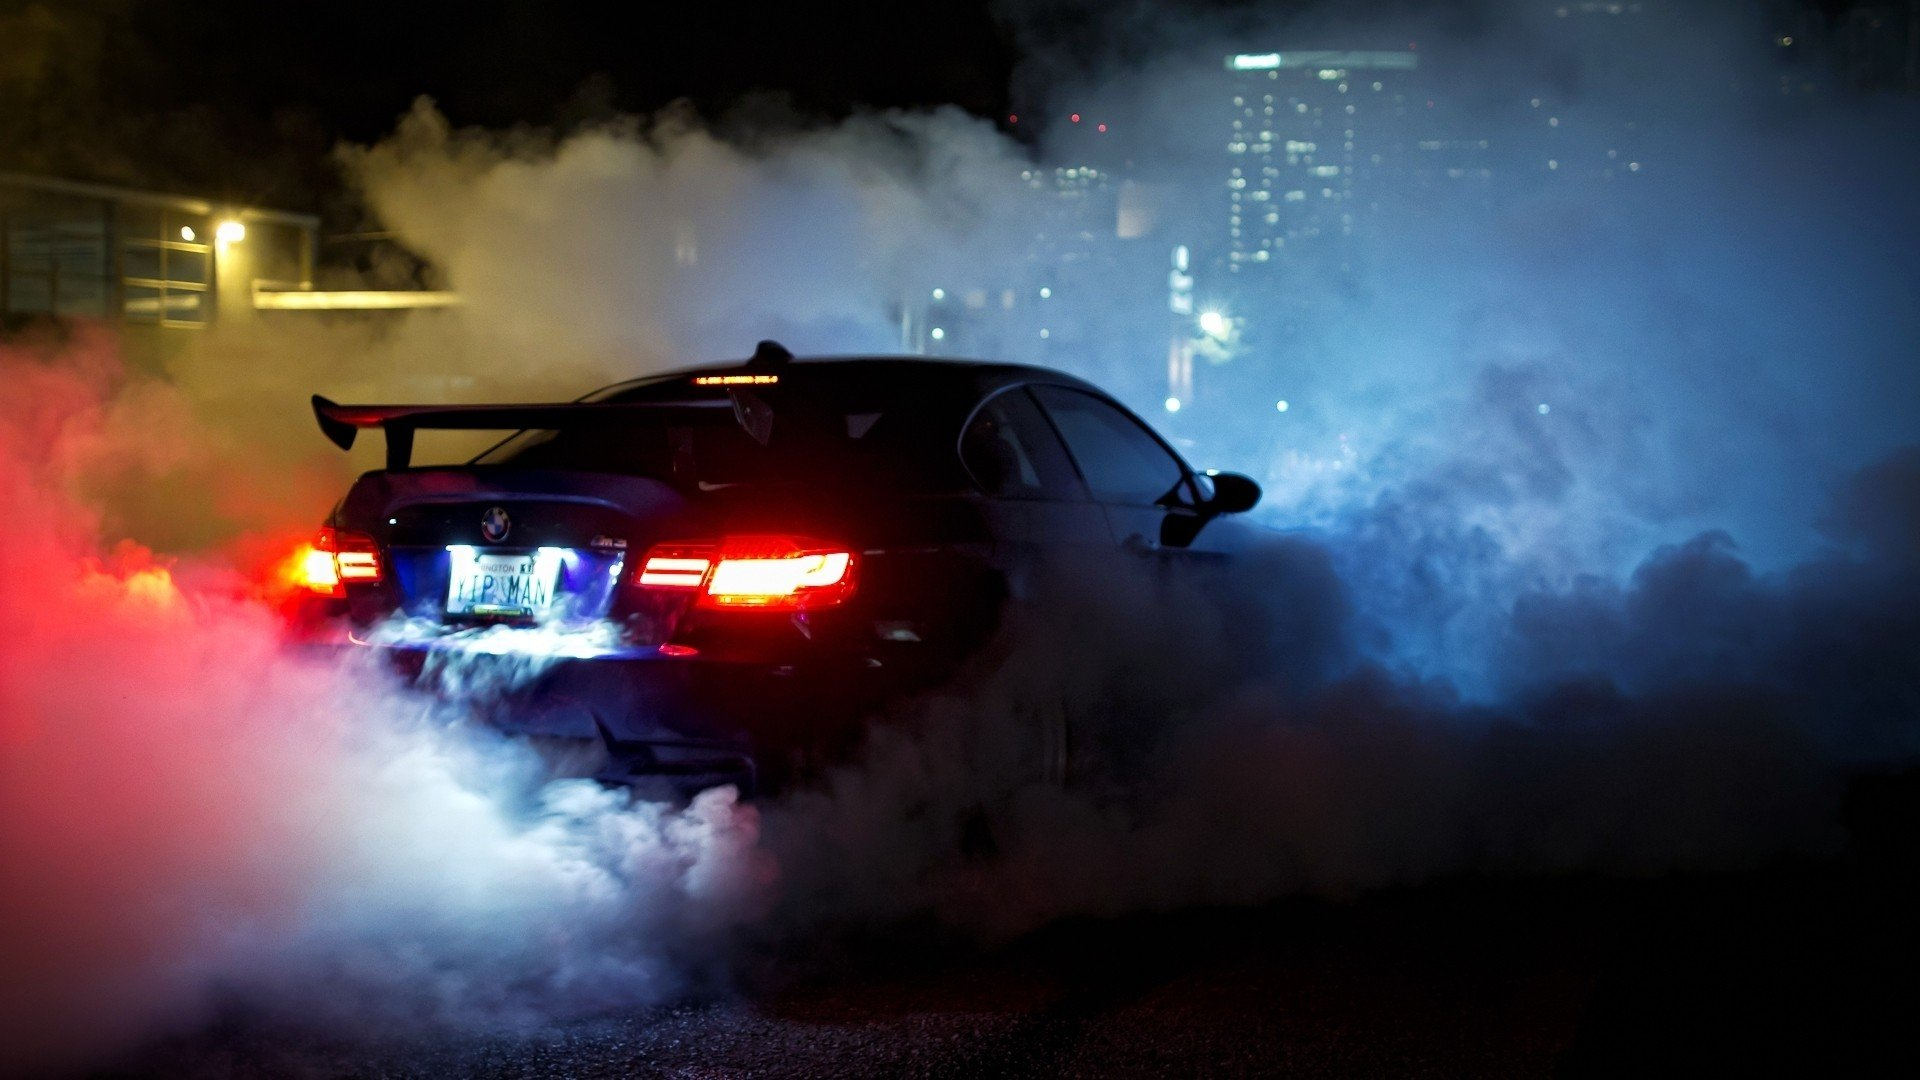 On this page you can browse car images and discover the beauty of car photography. Wallpaper 1920x1080 Px Car Fire Hd Night Smoke 1920x1080 Wallhaven 1779065 Hd Wallpapers Wallhere